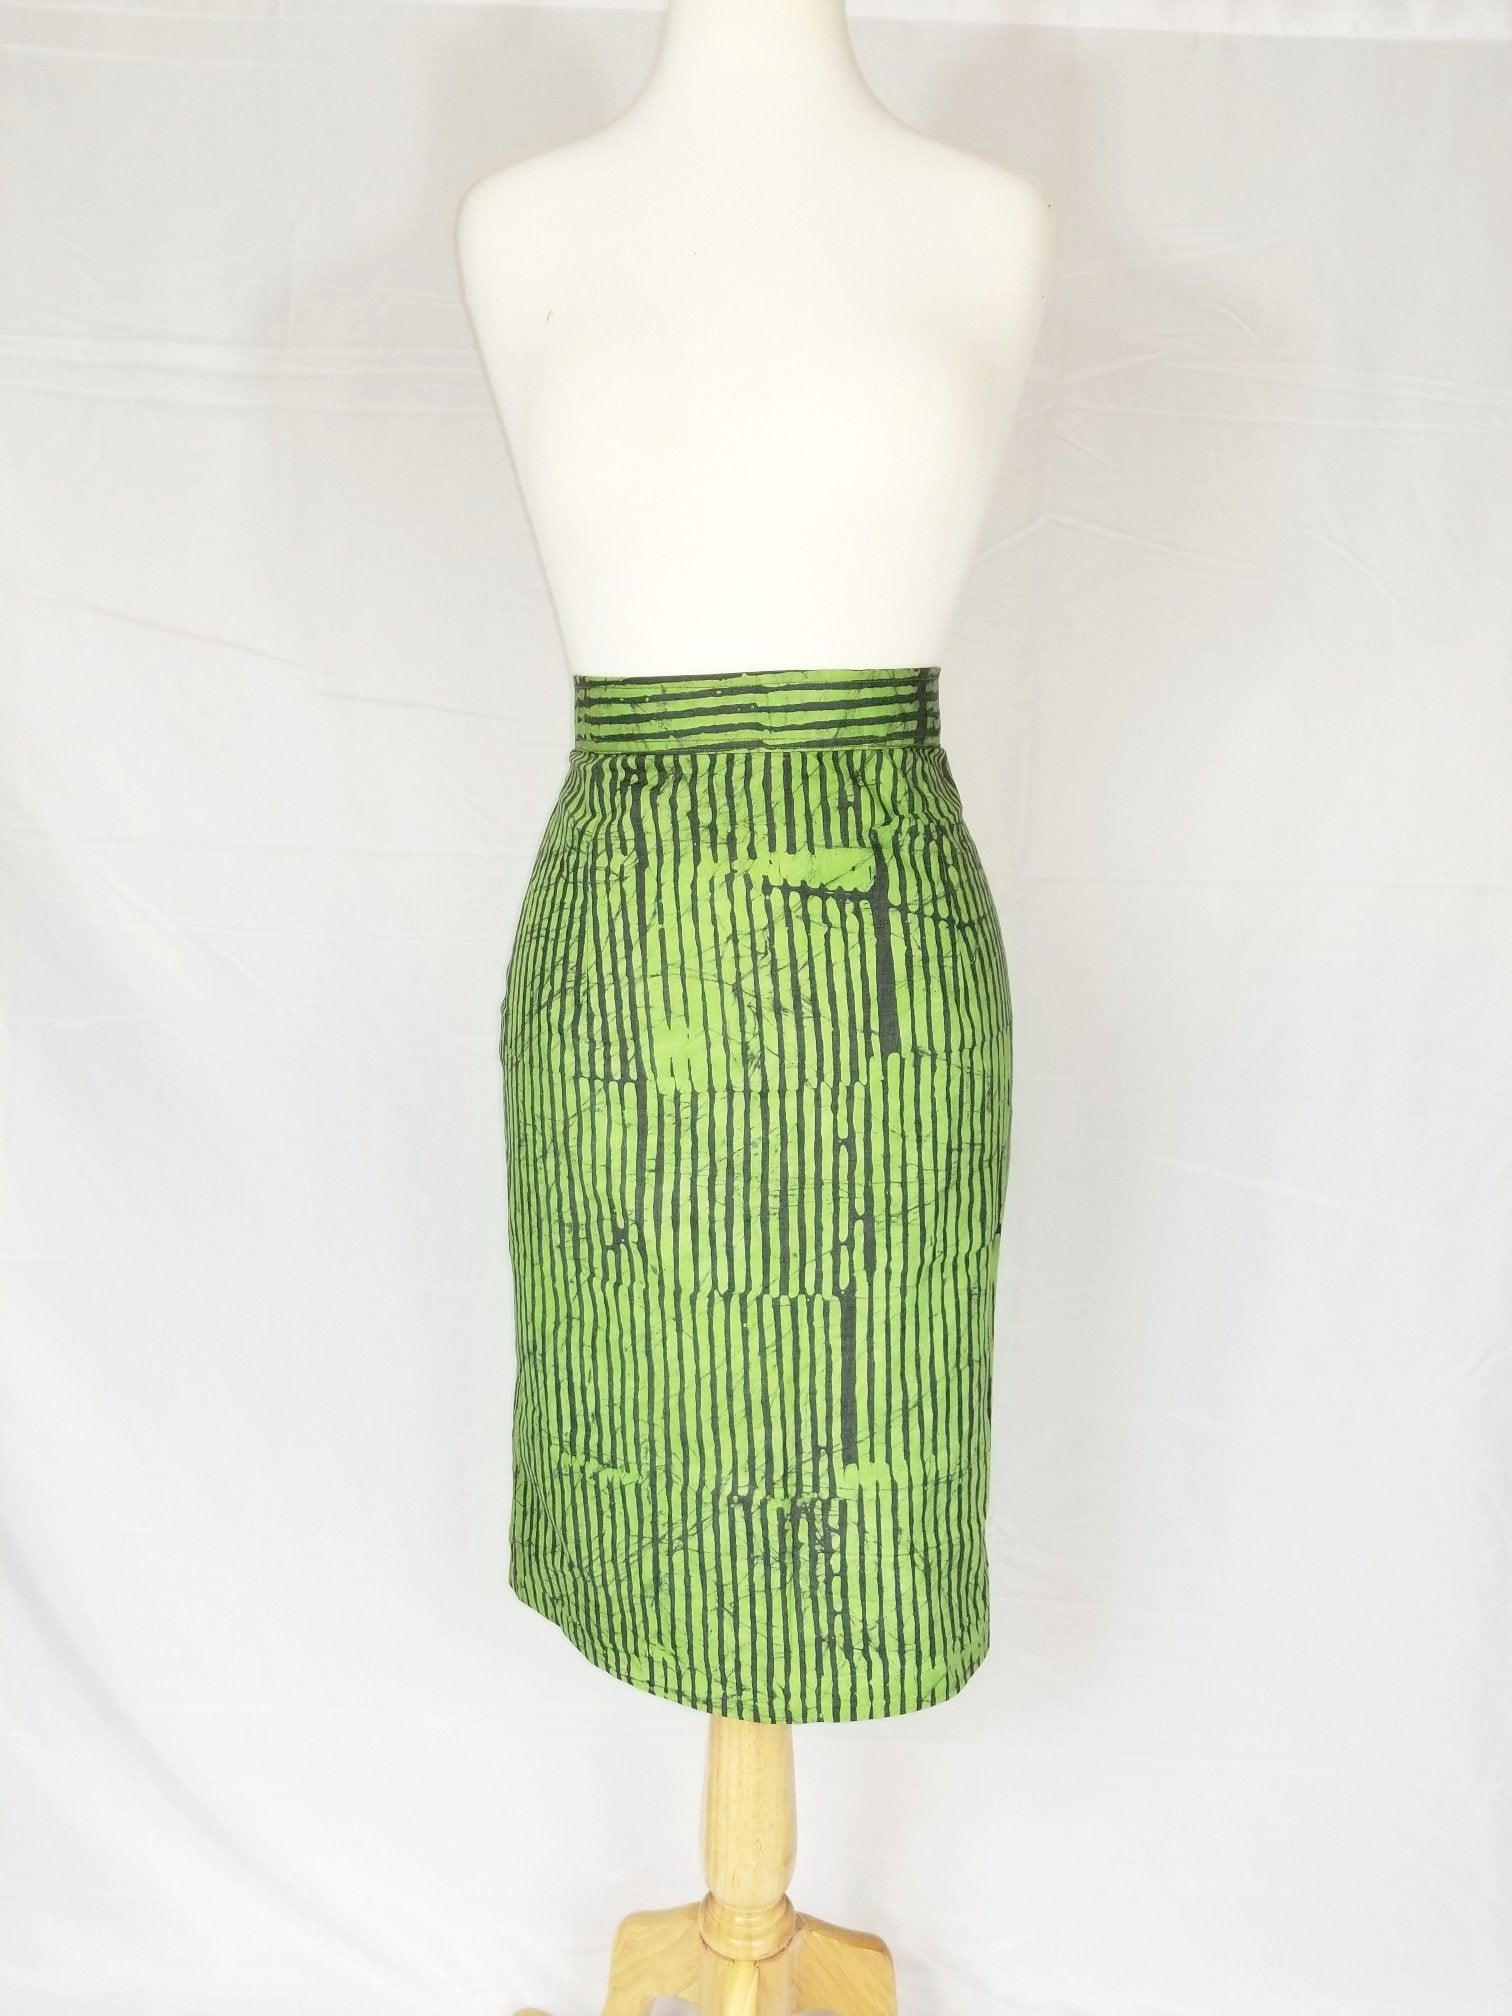 NYA Batik Pencil skirt - Green and grey